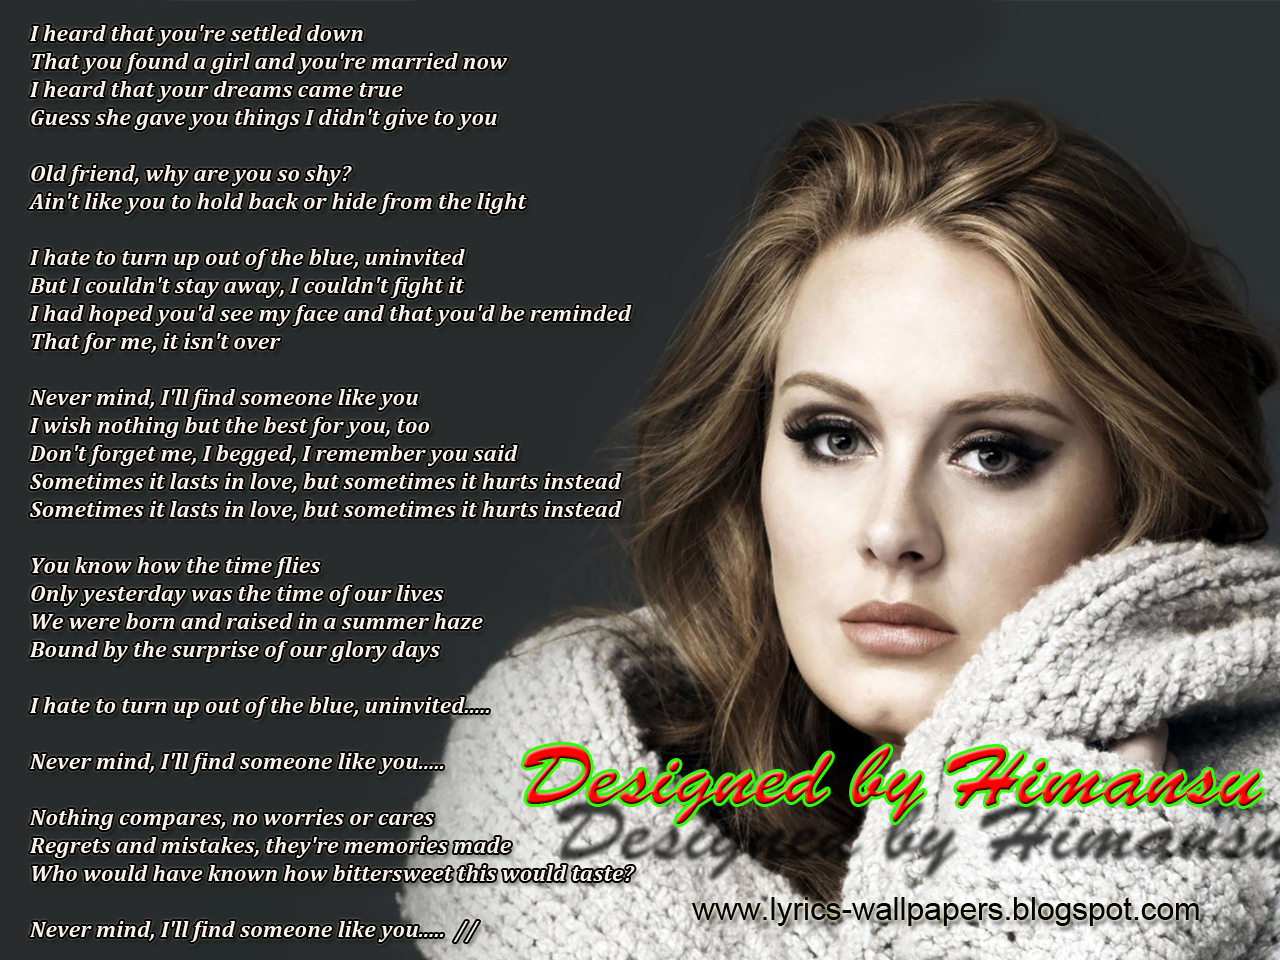 Lyrics Wallpapers: Adele - Someone Like You